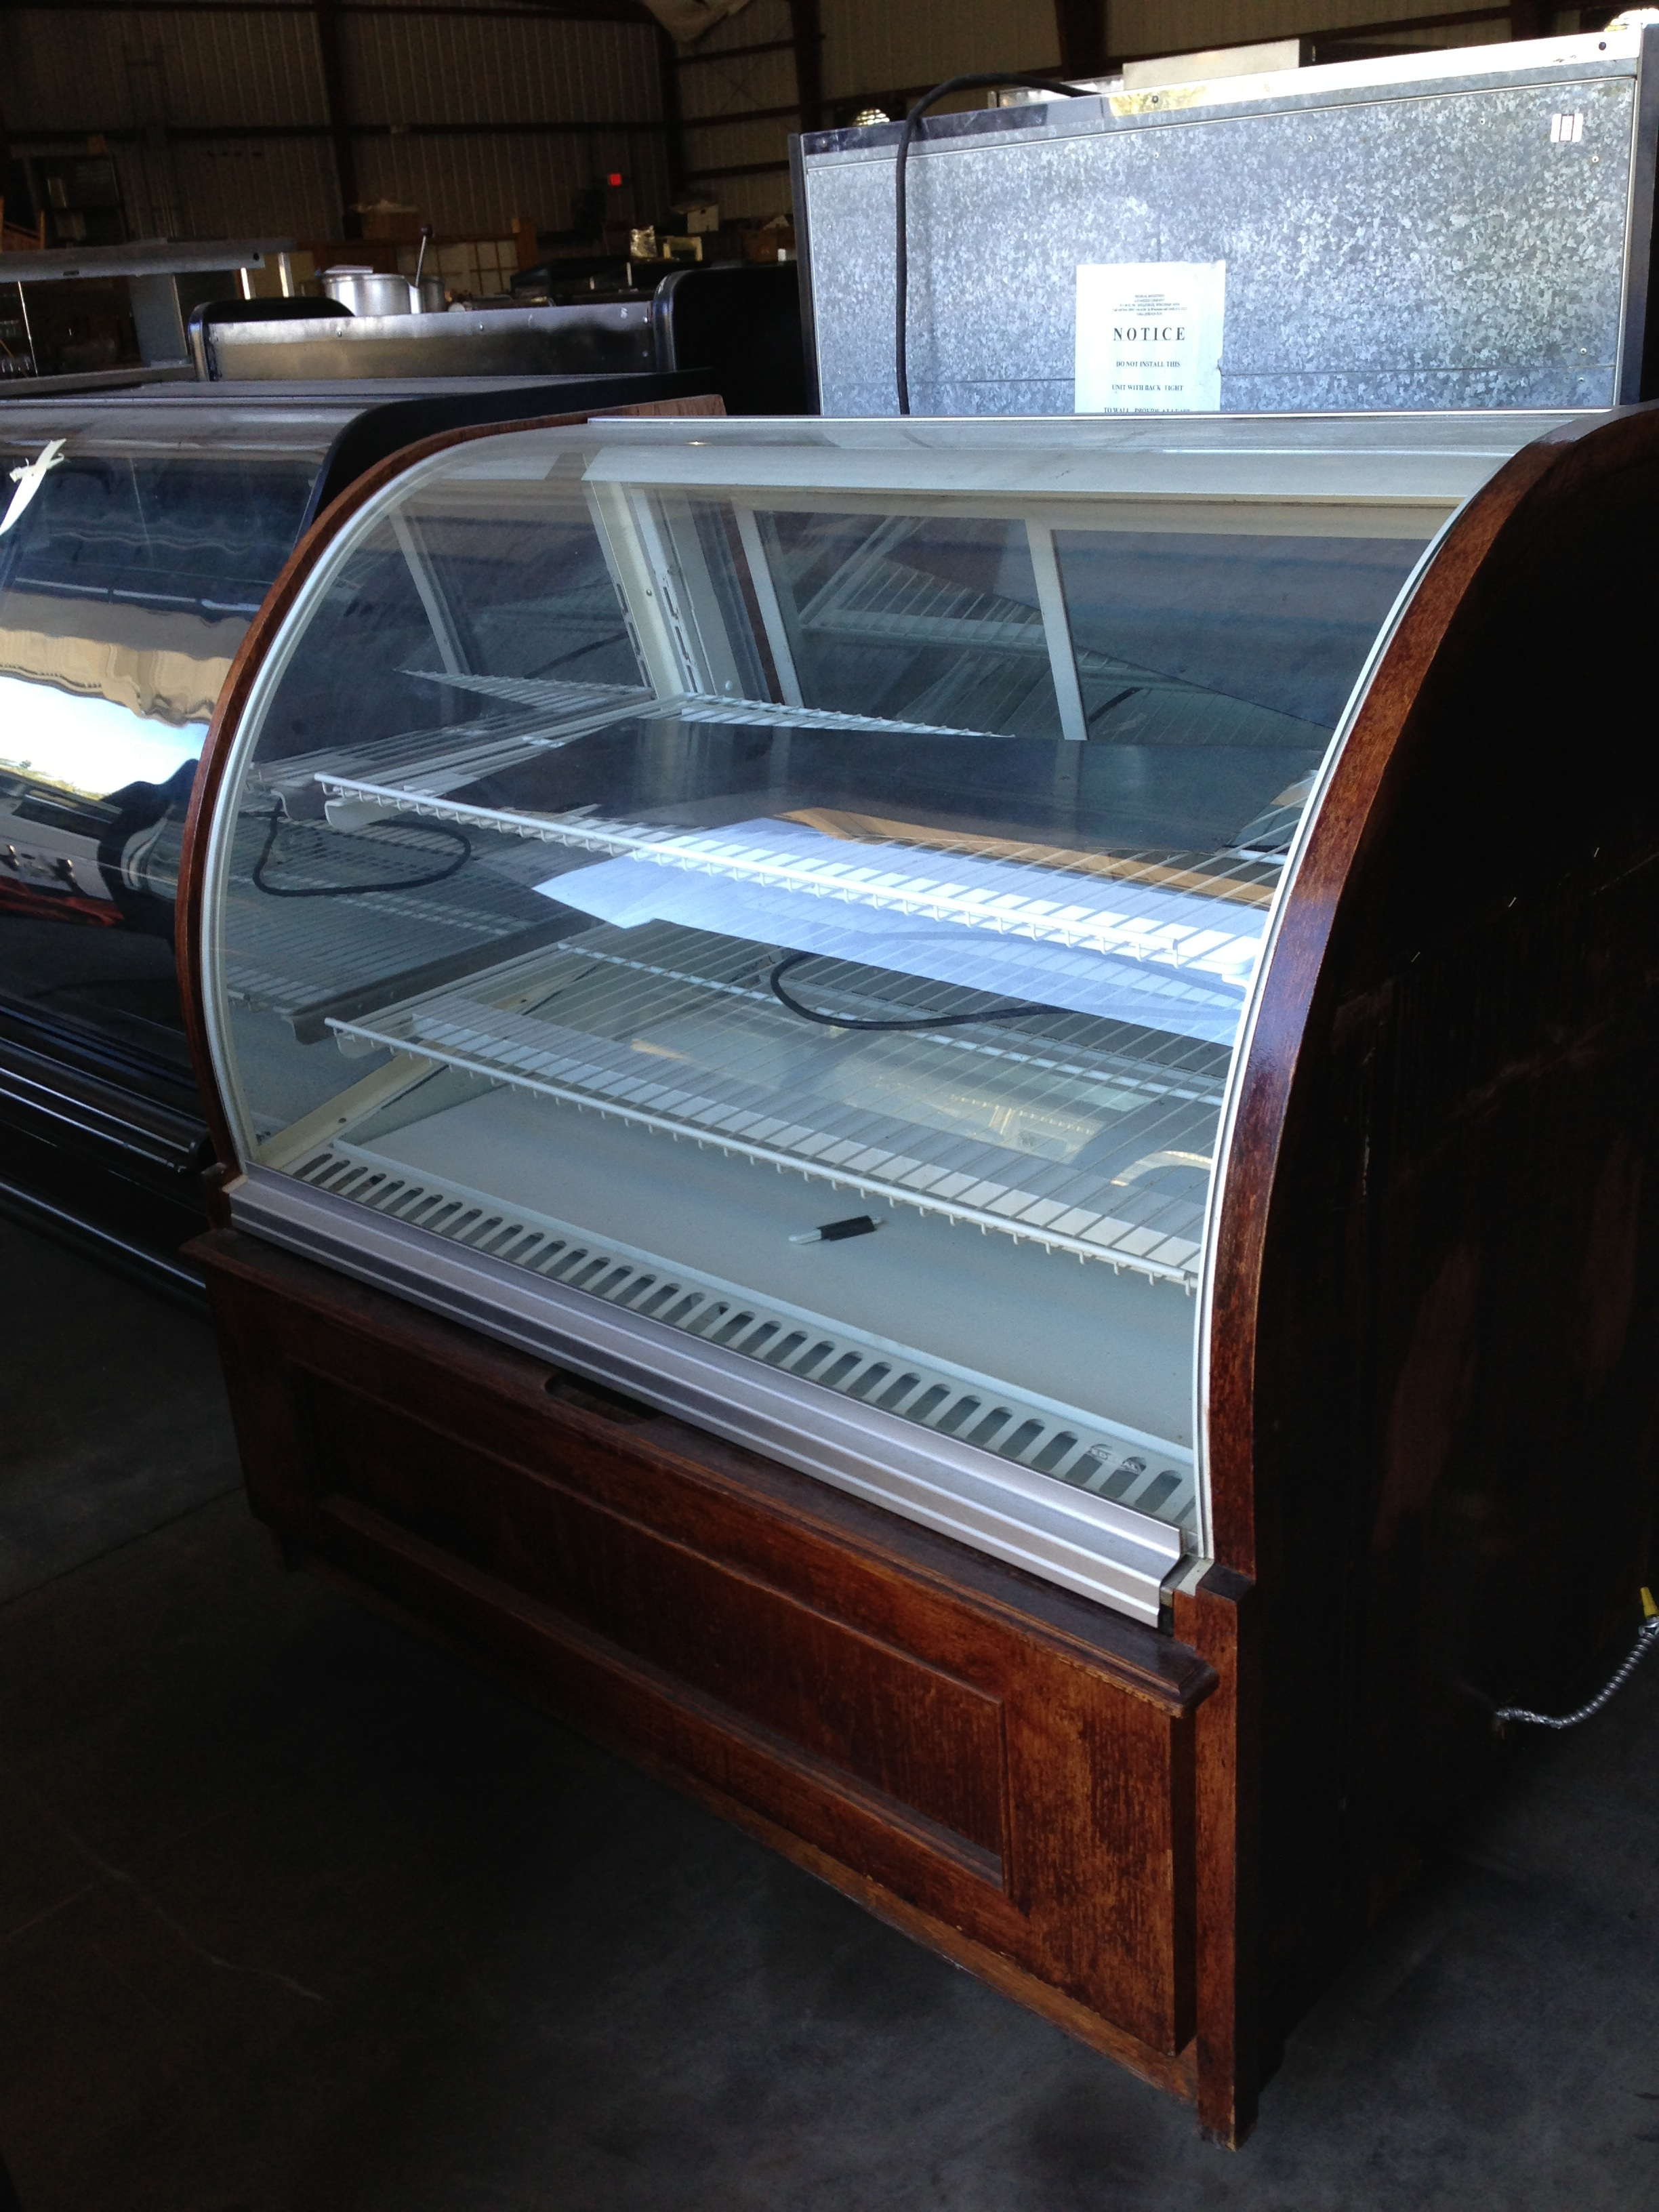 bakery countertop display solutions our hot blog rosseto by countertops case are serving